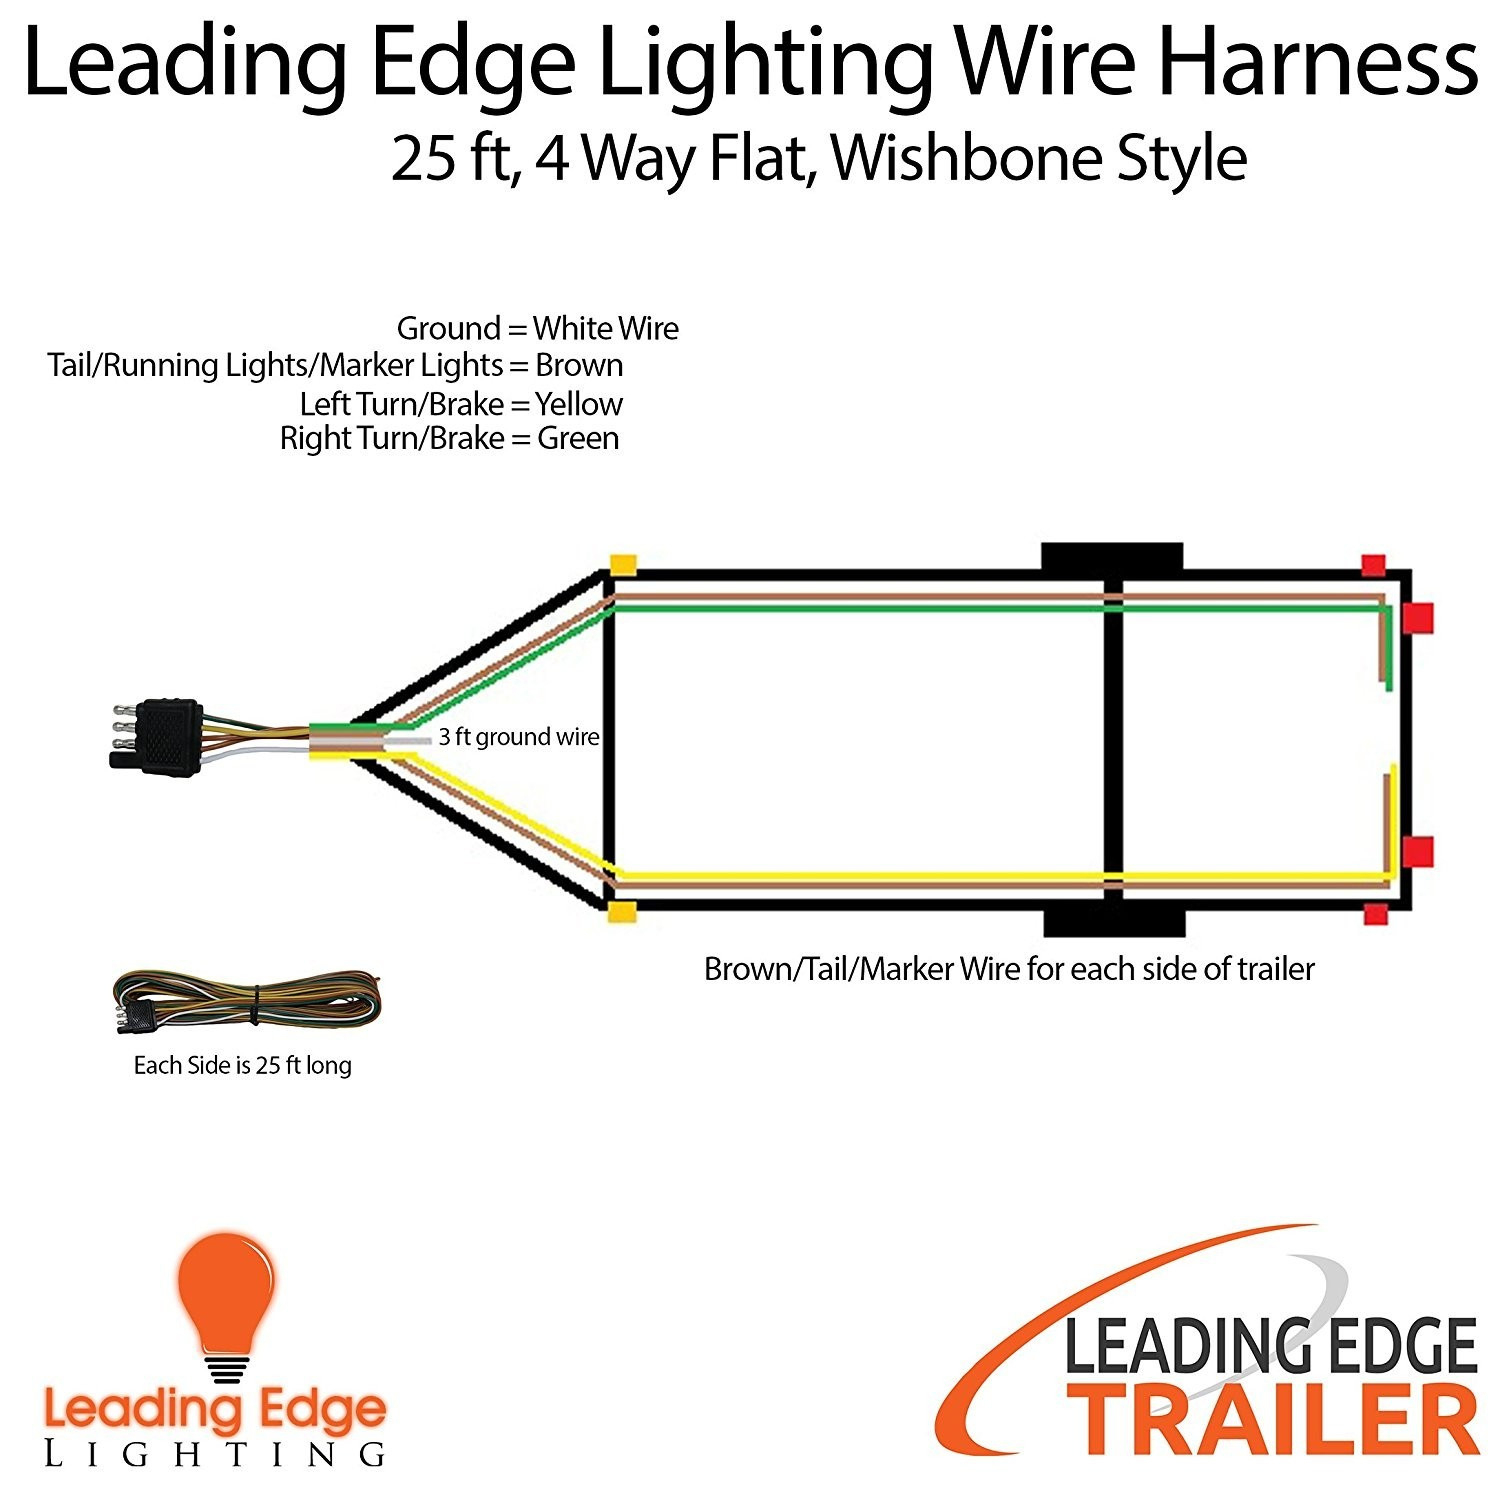 4 Wire Trailer Wiring Diagram Troubleshooting Best Of 4 Wire Trailer - 4 Wire Trailer Wiring Diagram Troubleshooting